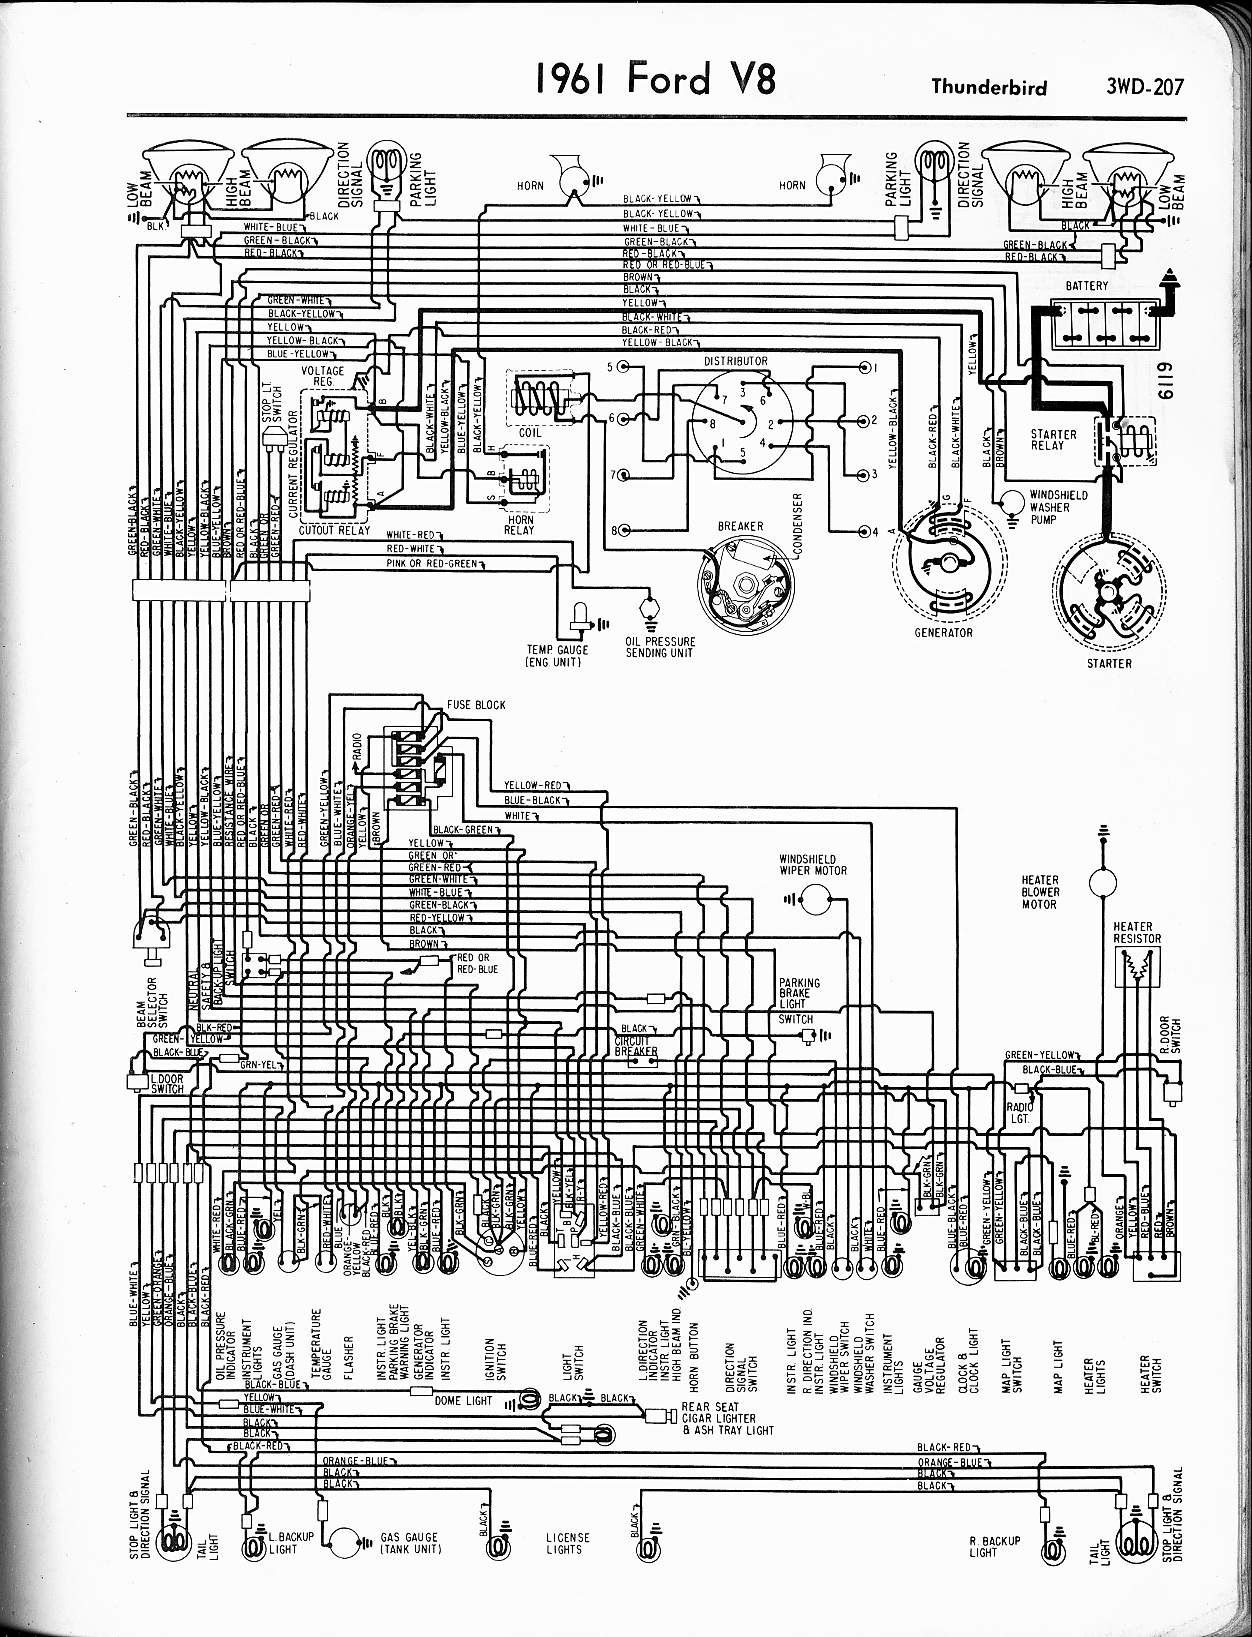 57 65 ford wiring diagrams 1955 thunderbird wiring 1957 thunderbird power window wiring diagram #38